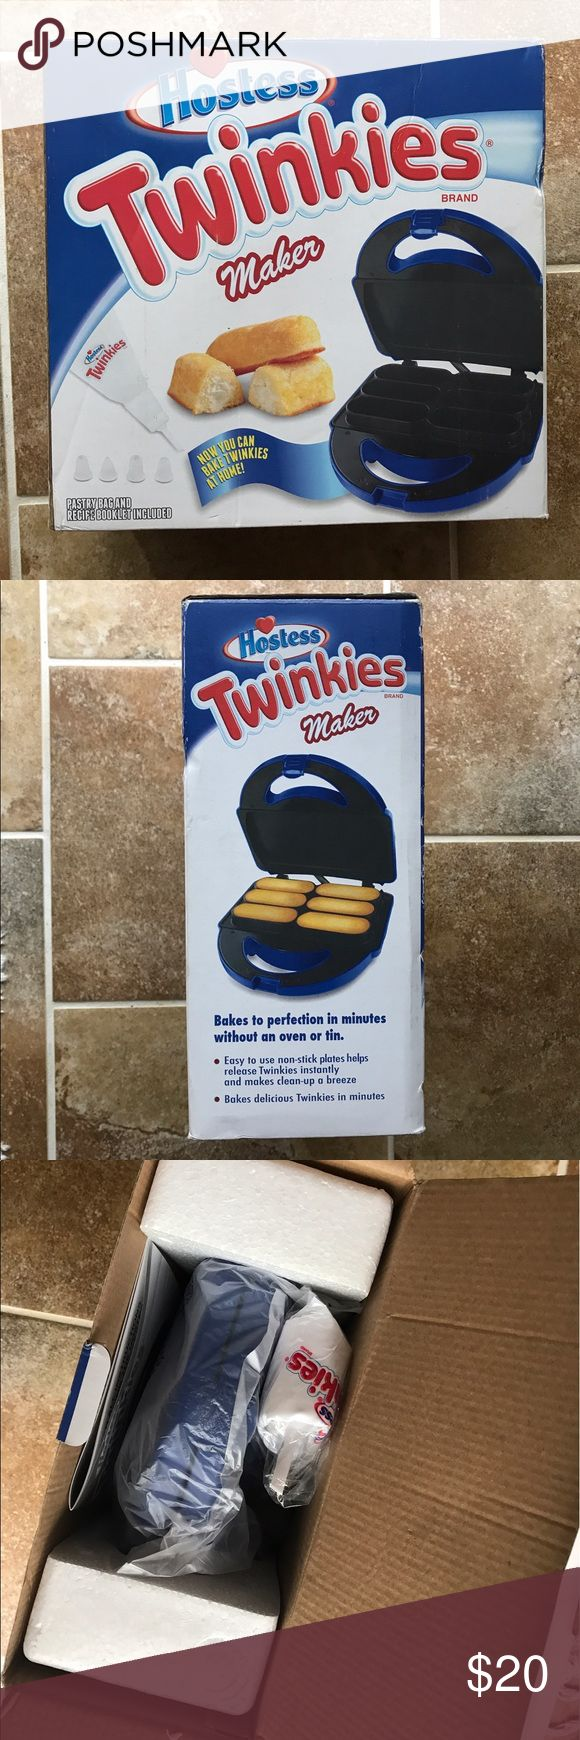 Twinkie Maker Never been used. Didn't take out items in box to picture because it's brand new, all parts untouched. Other